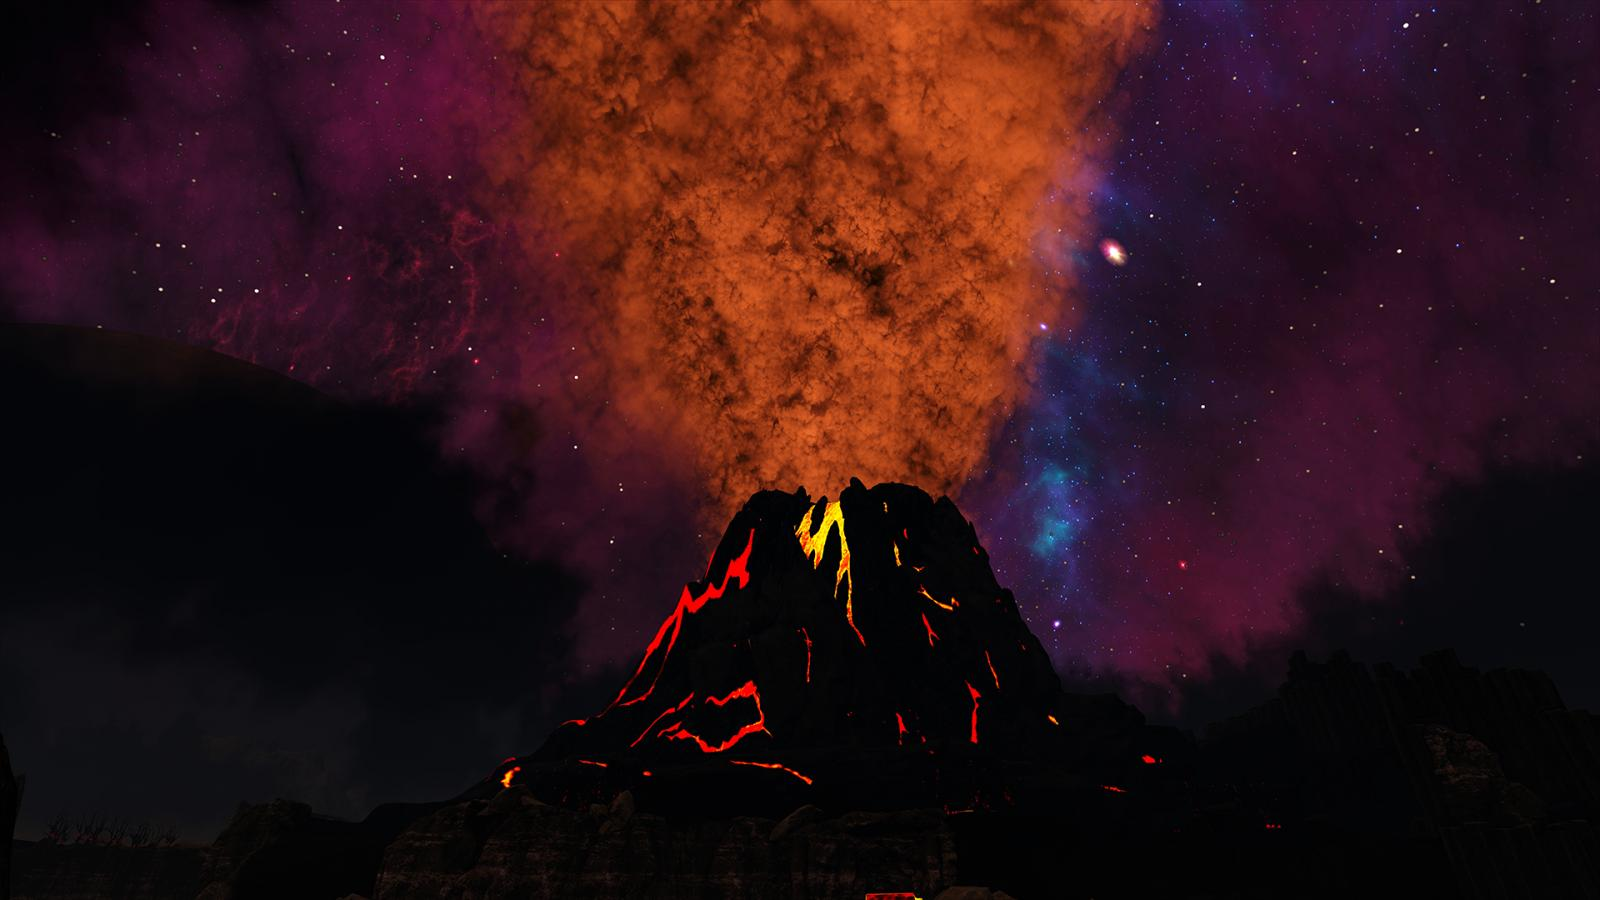 large.5a9d8534394ad_ZoaLive-Volcanoatnight-SuperResolution.jpg